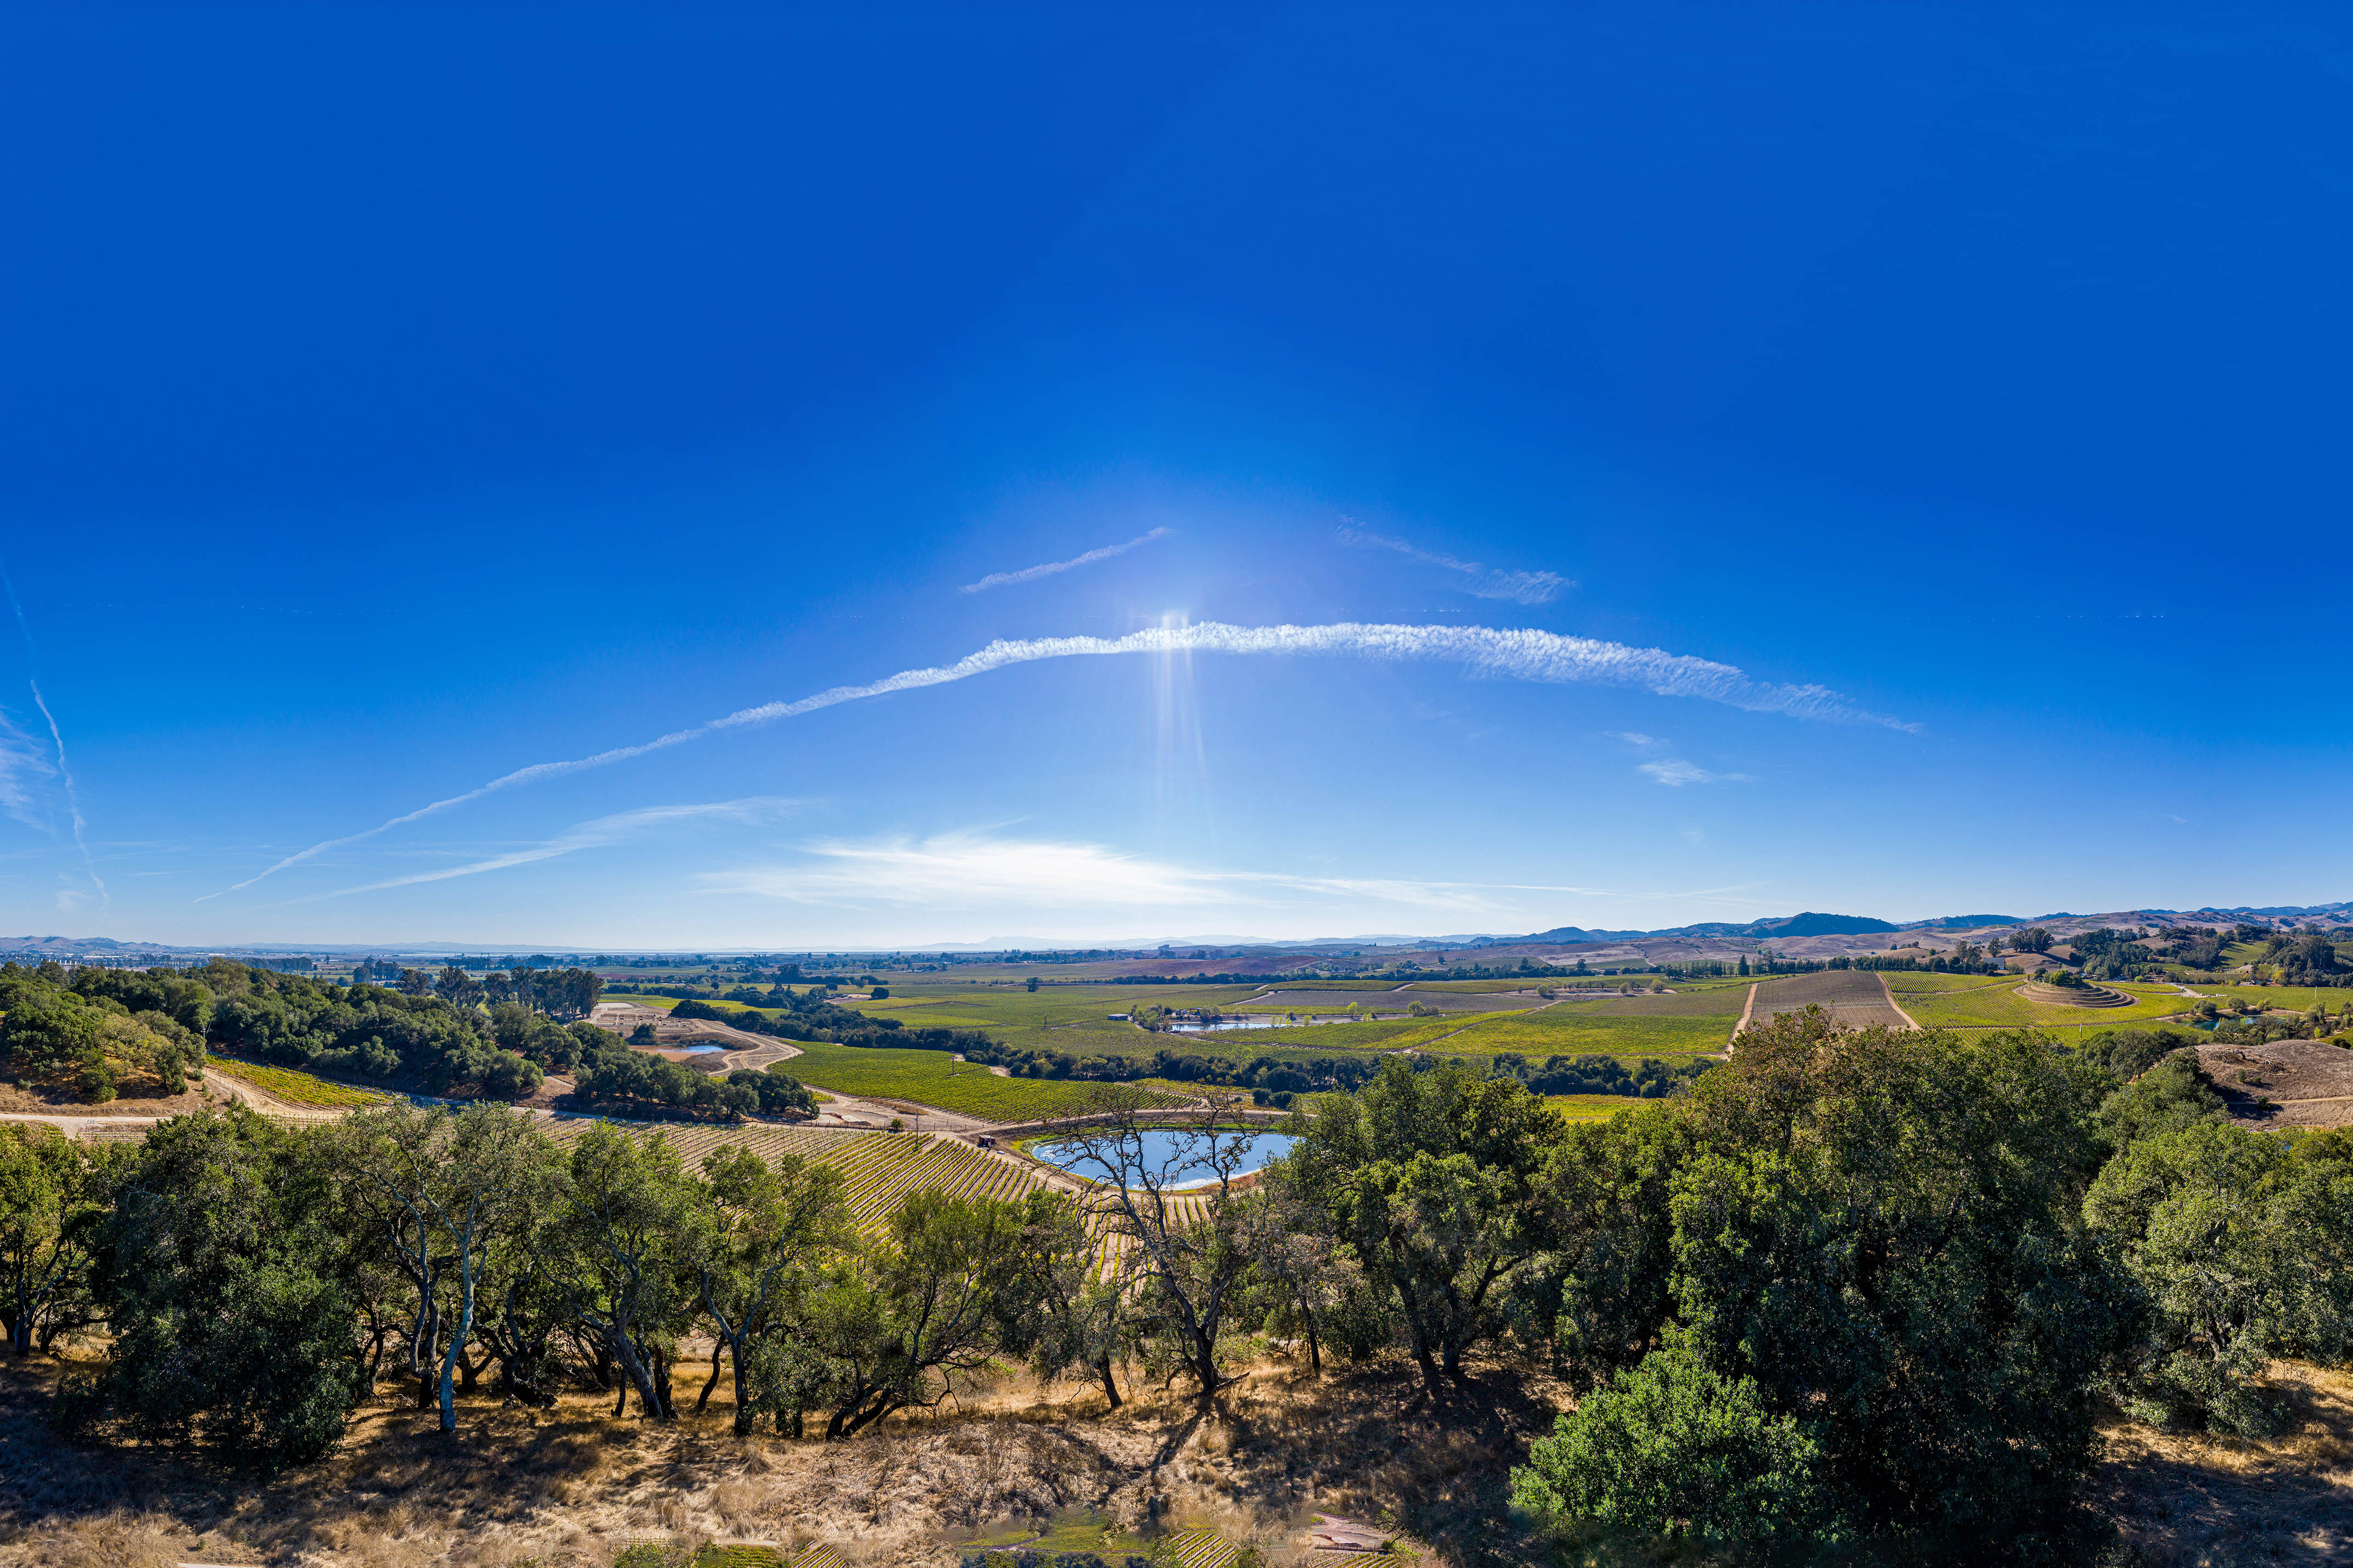 C08 - DJI_0361-Pano_smallerCROPPED